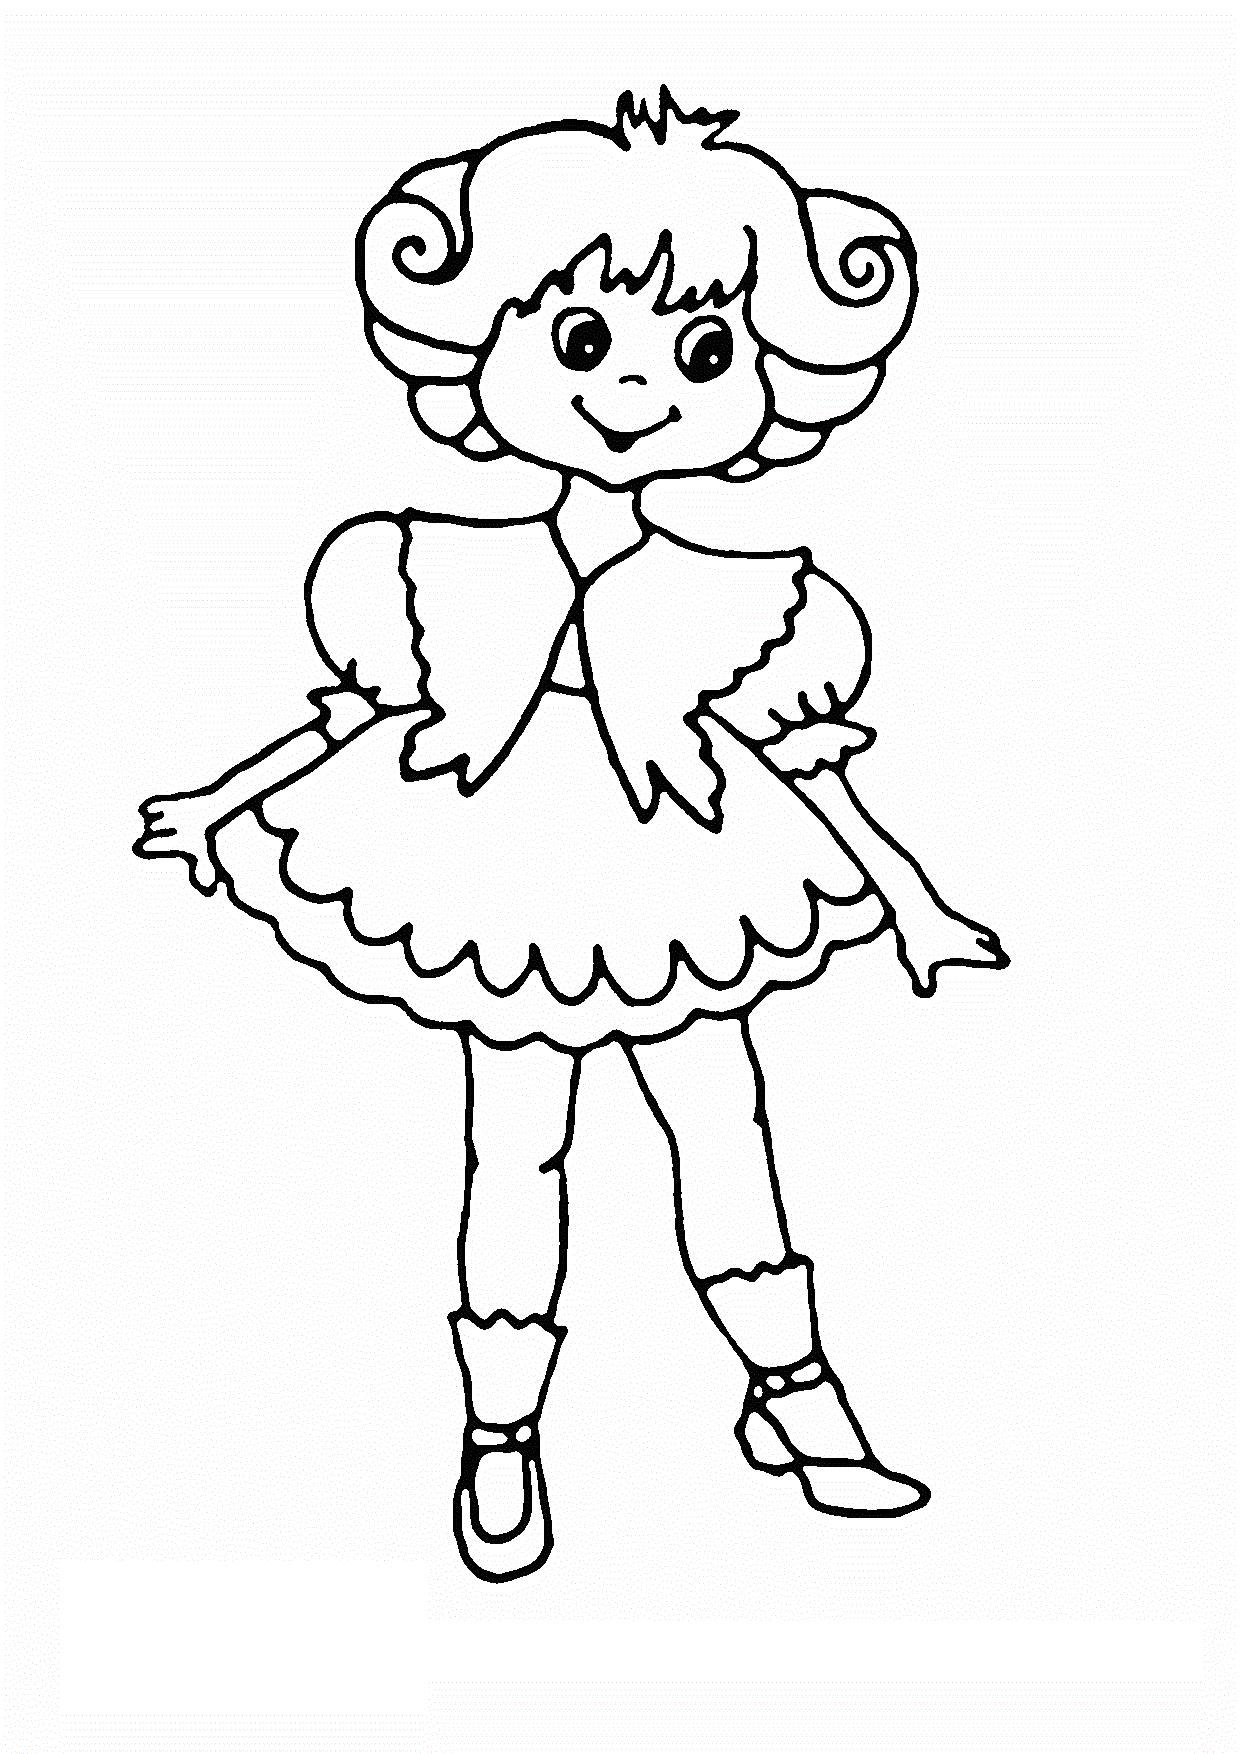 16 Printable Colouring Pages For 4 Year Olds